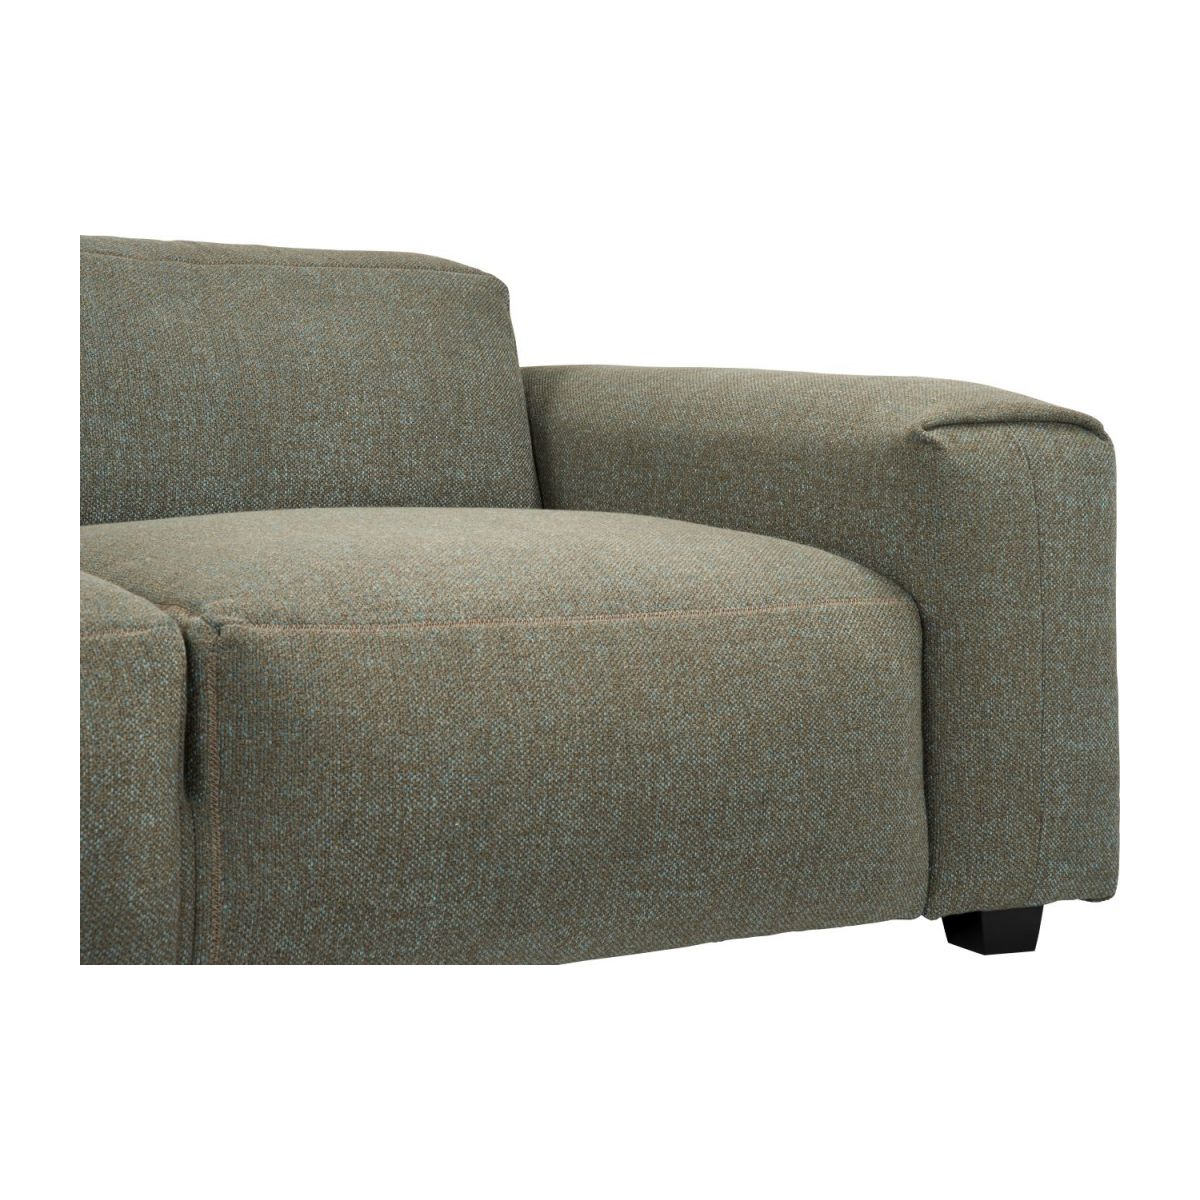 3 seater sofa in Lecce fabric, slade grey n°5